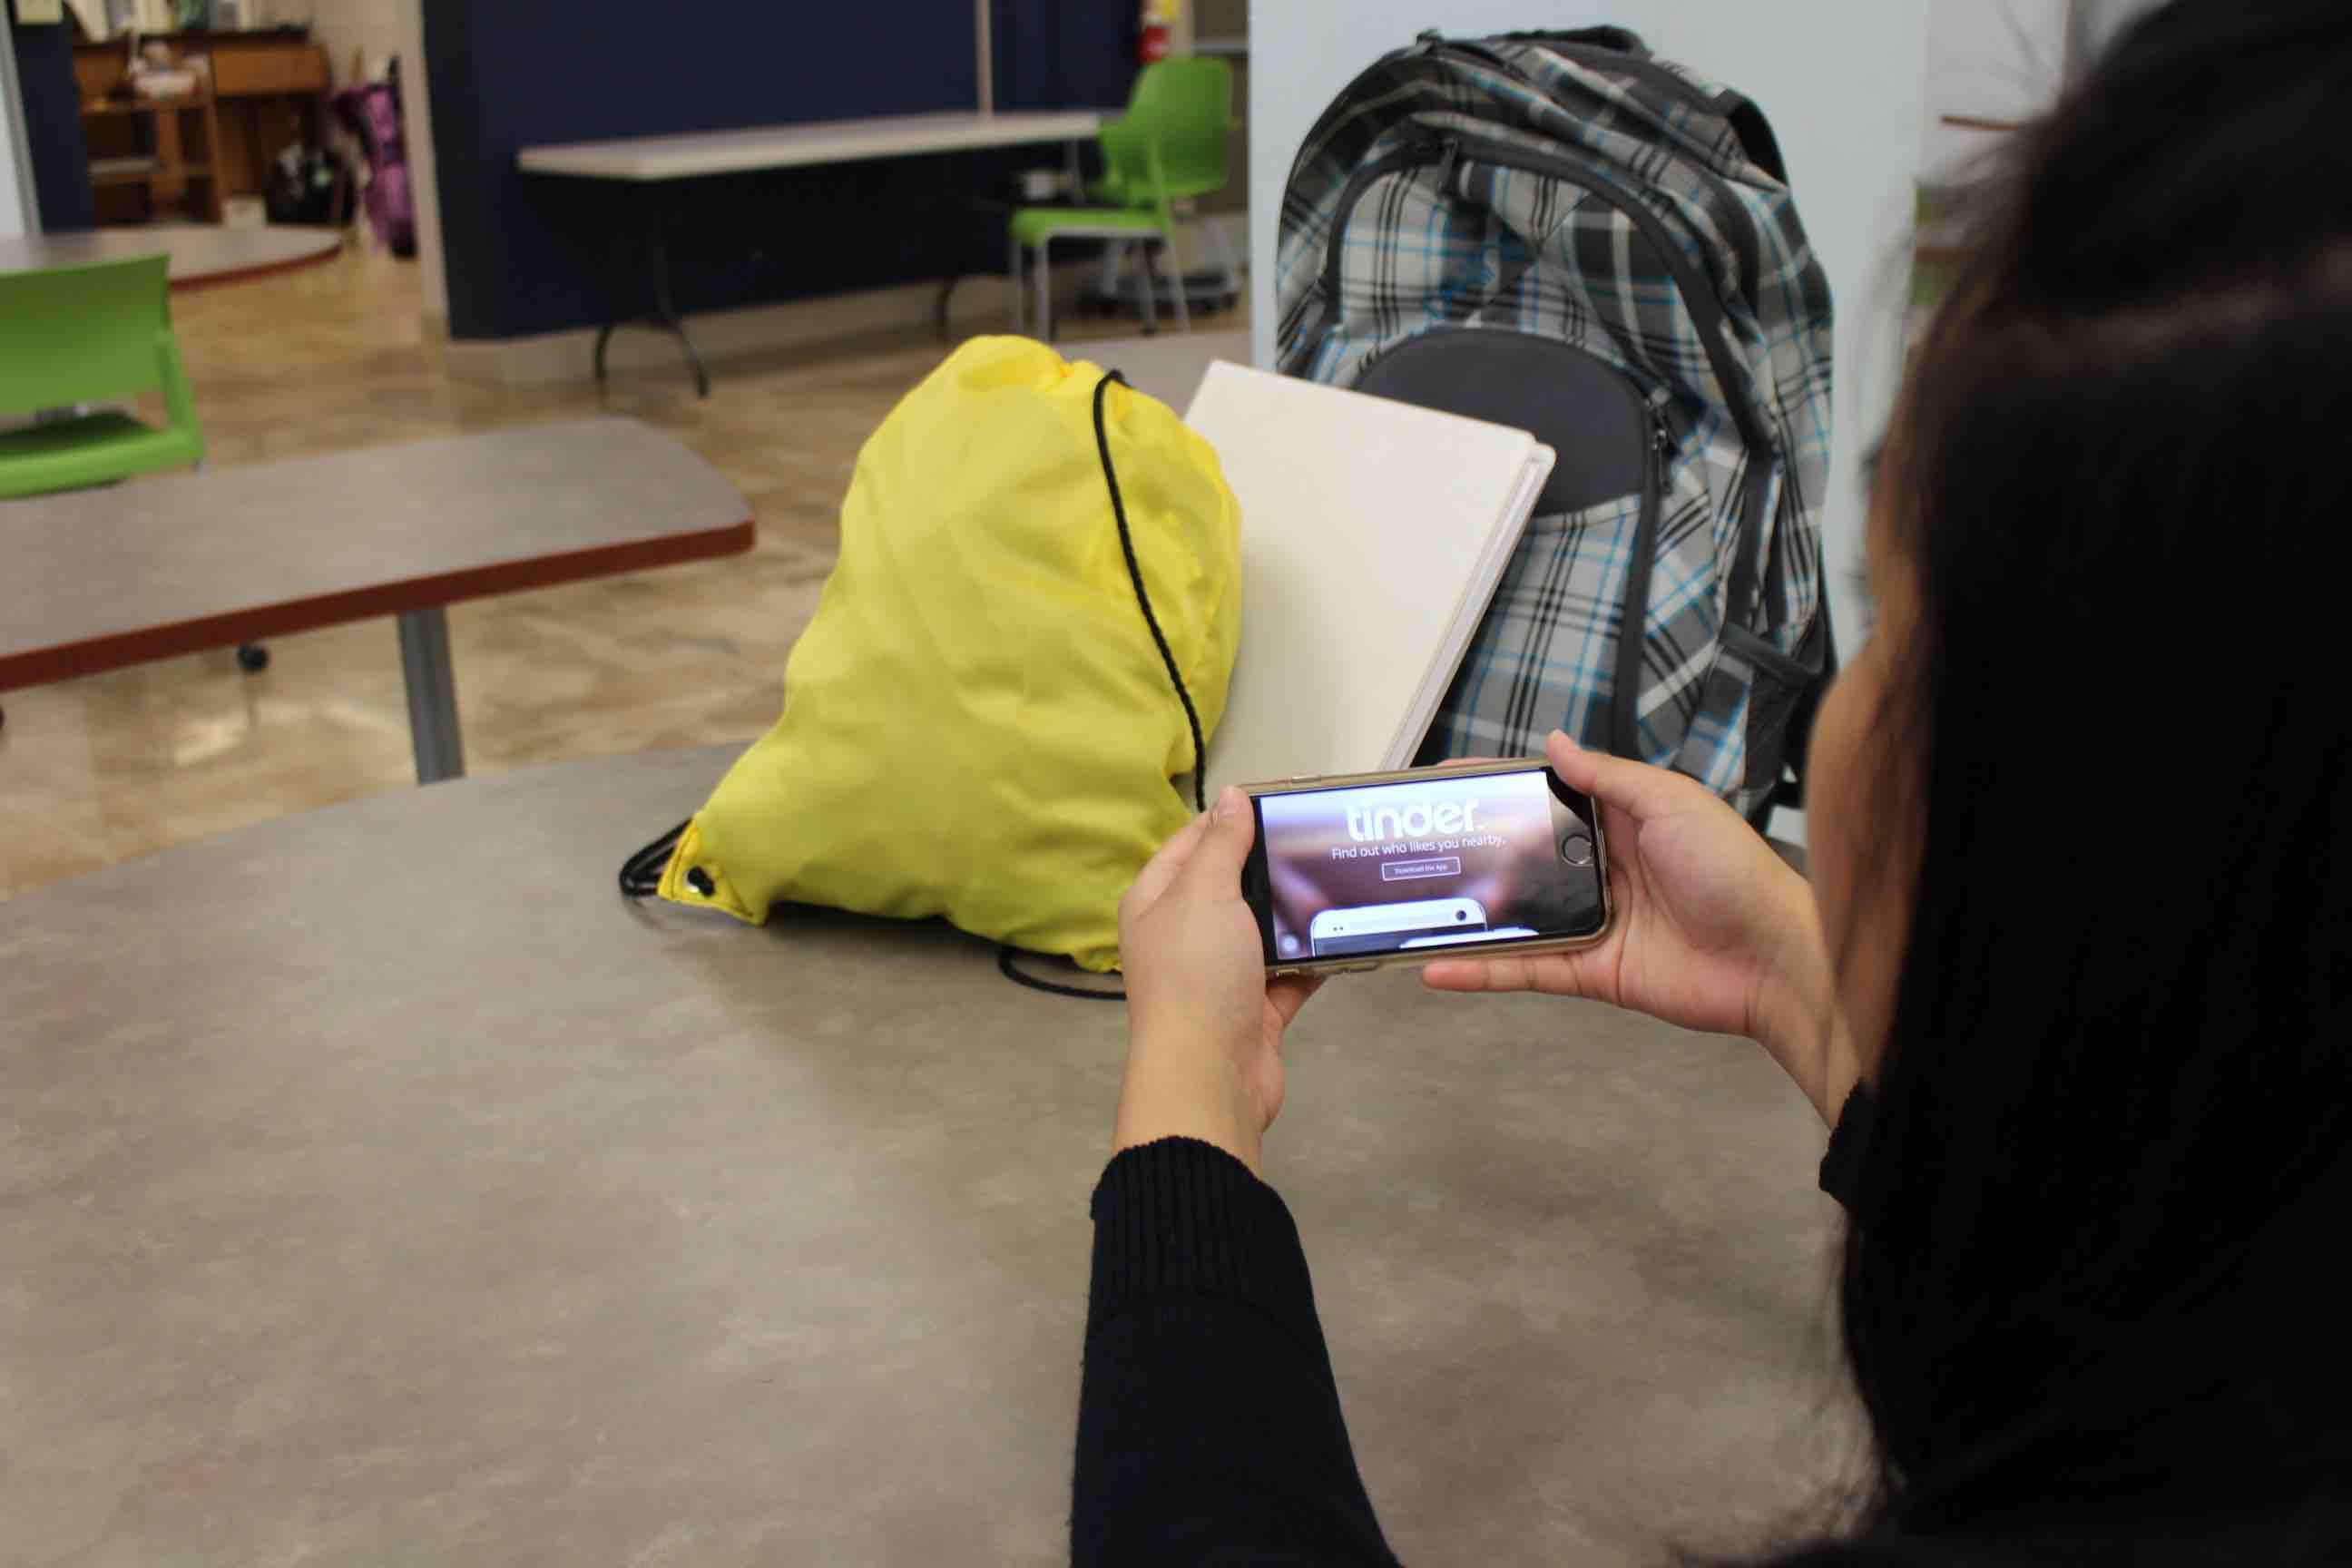 A teen accesses popular dating app Tinder on her mobile phone. She joins a rising number of today's youth, including those in Hawaii, who are dabbling in online danger, experts say. Photo by Ashley Marie Lardizabal.